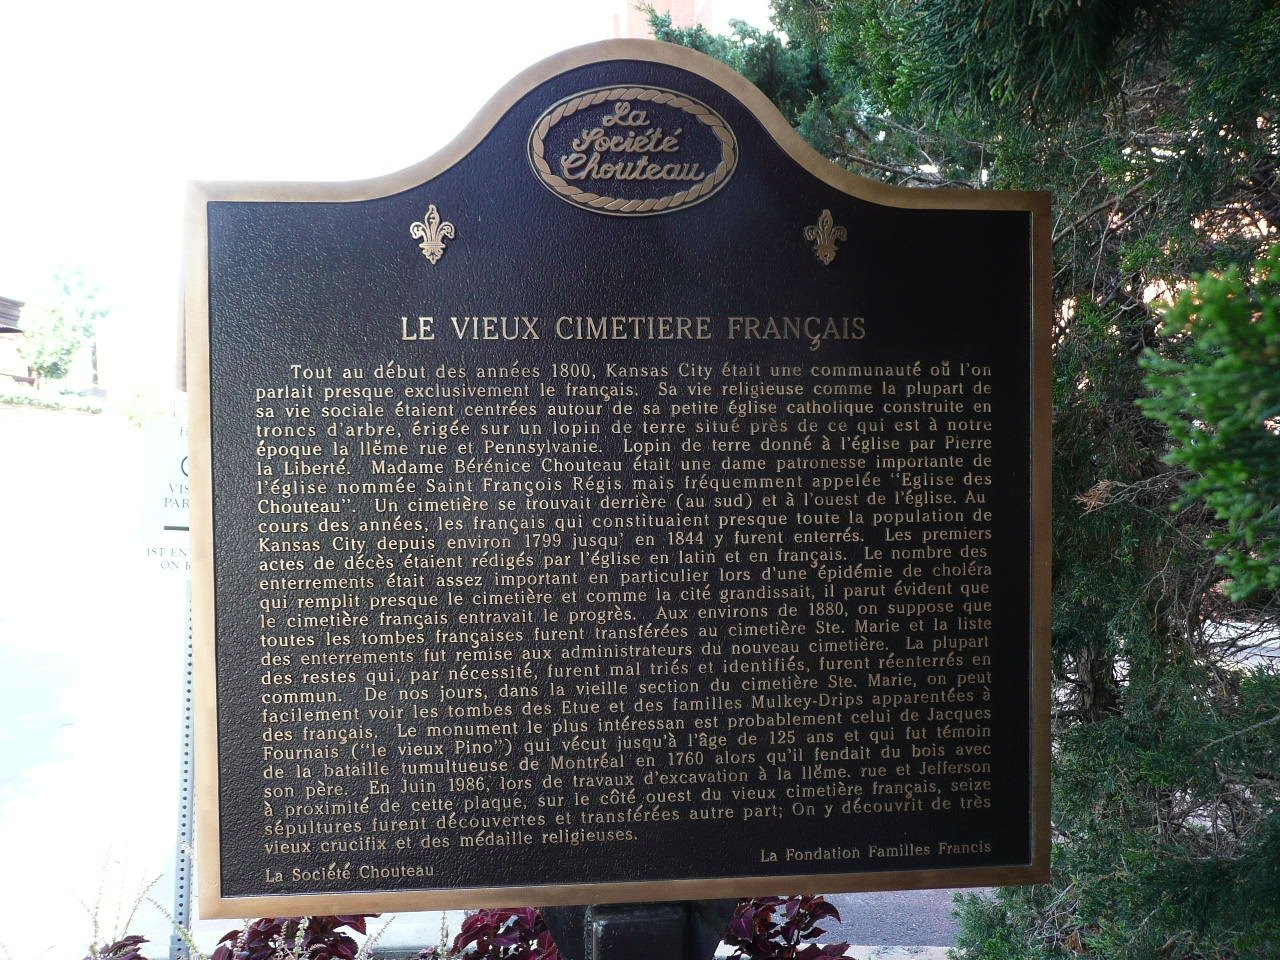 French side of the marker. Image obtained from the Historical Marker Database.